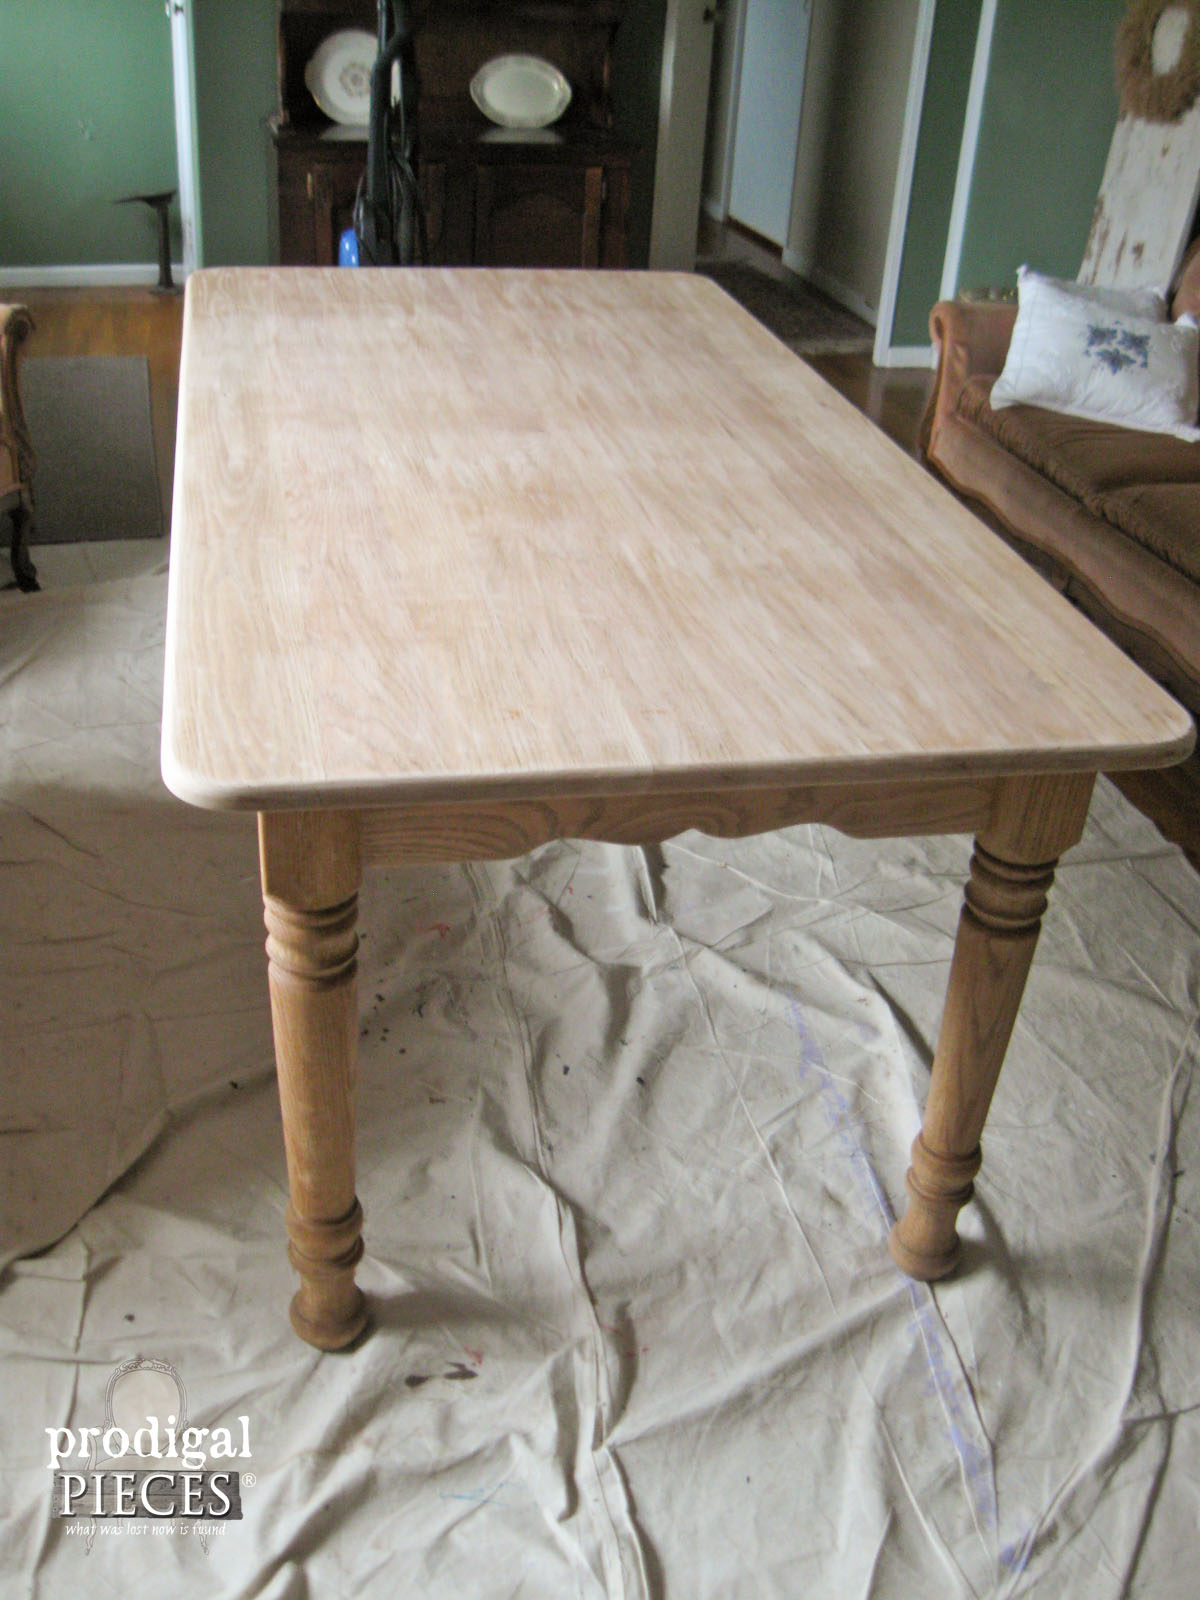 Superieur Farmhouse Table Sanded And Stripped For Whitewash | Prodigal Pieces |  Www.prodigalpieces.com